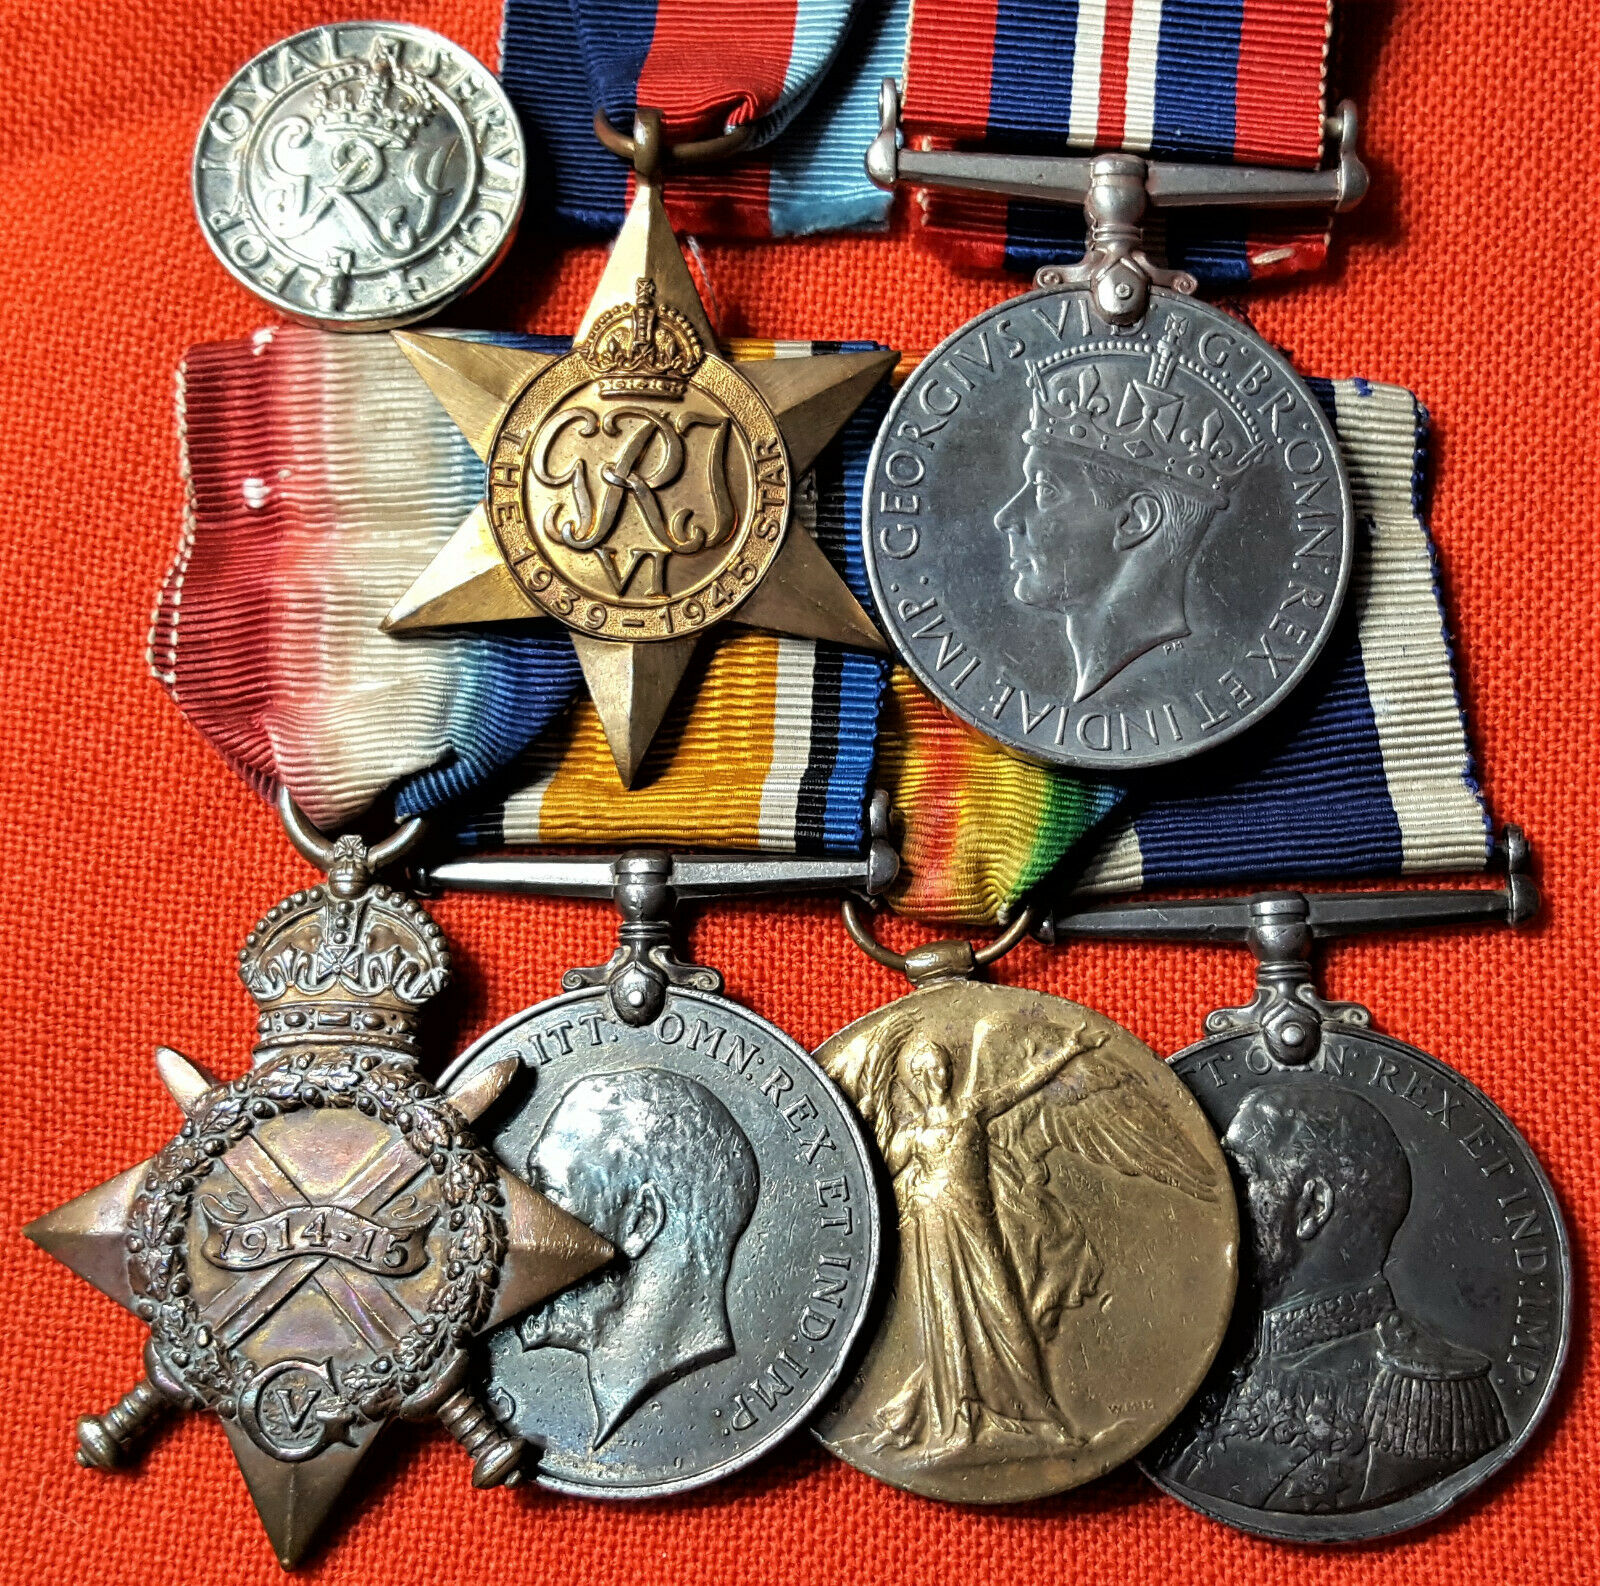 RARE WW1 & WW2 ROYAL NAVY SUBMARINER'S MEDAL GROUP CERA G.H.R. HICKS SUB E19